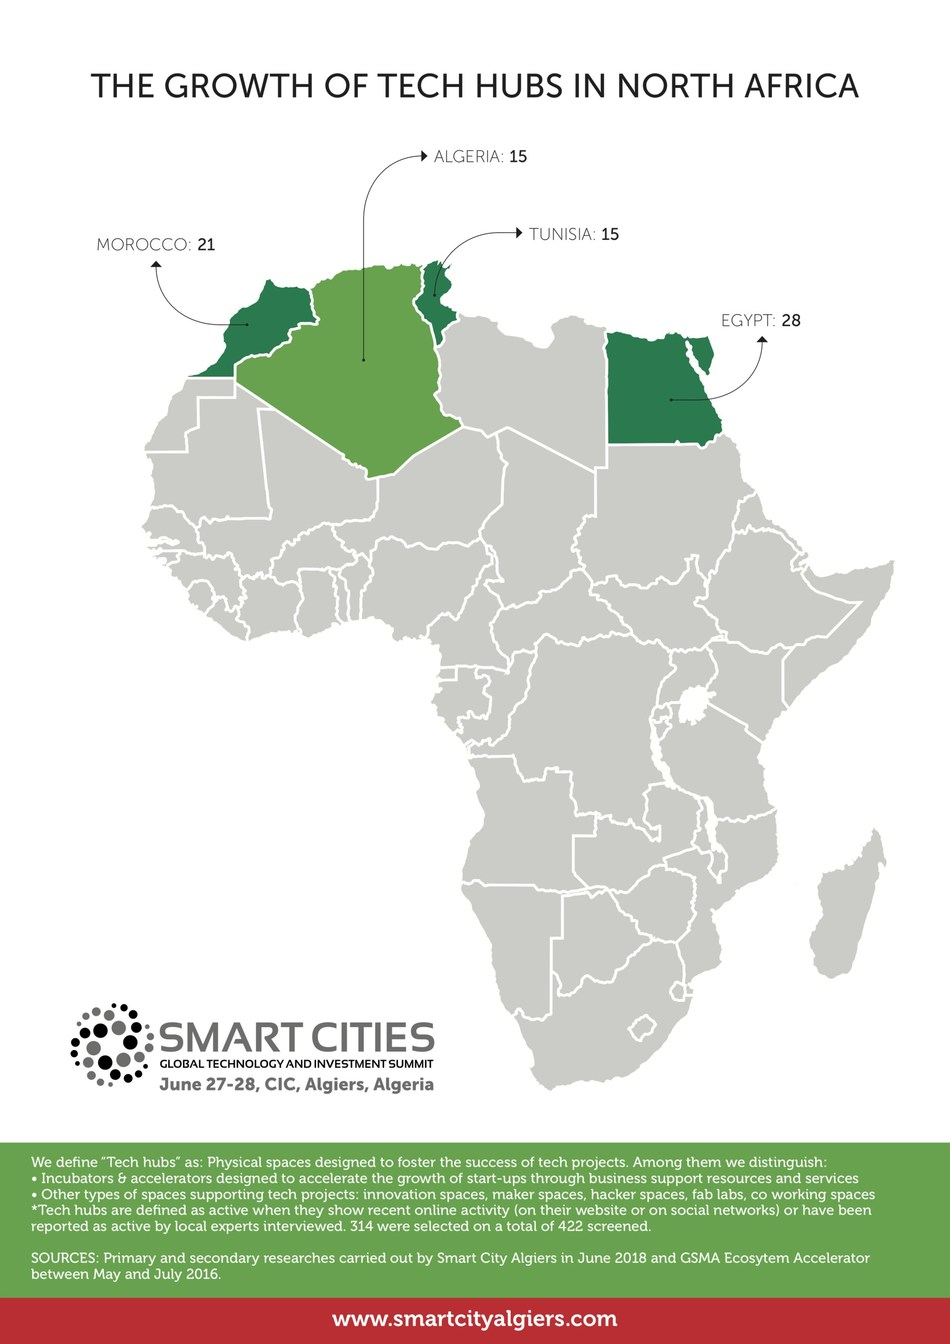 The growth of North African Technology Hubs. Source Smart Cities Global Technology & Investment Summit 2018 (PRNewsfoto/Smart City Algiers)